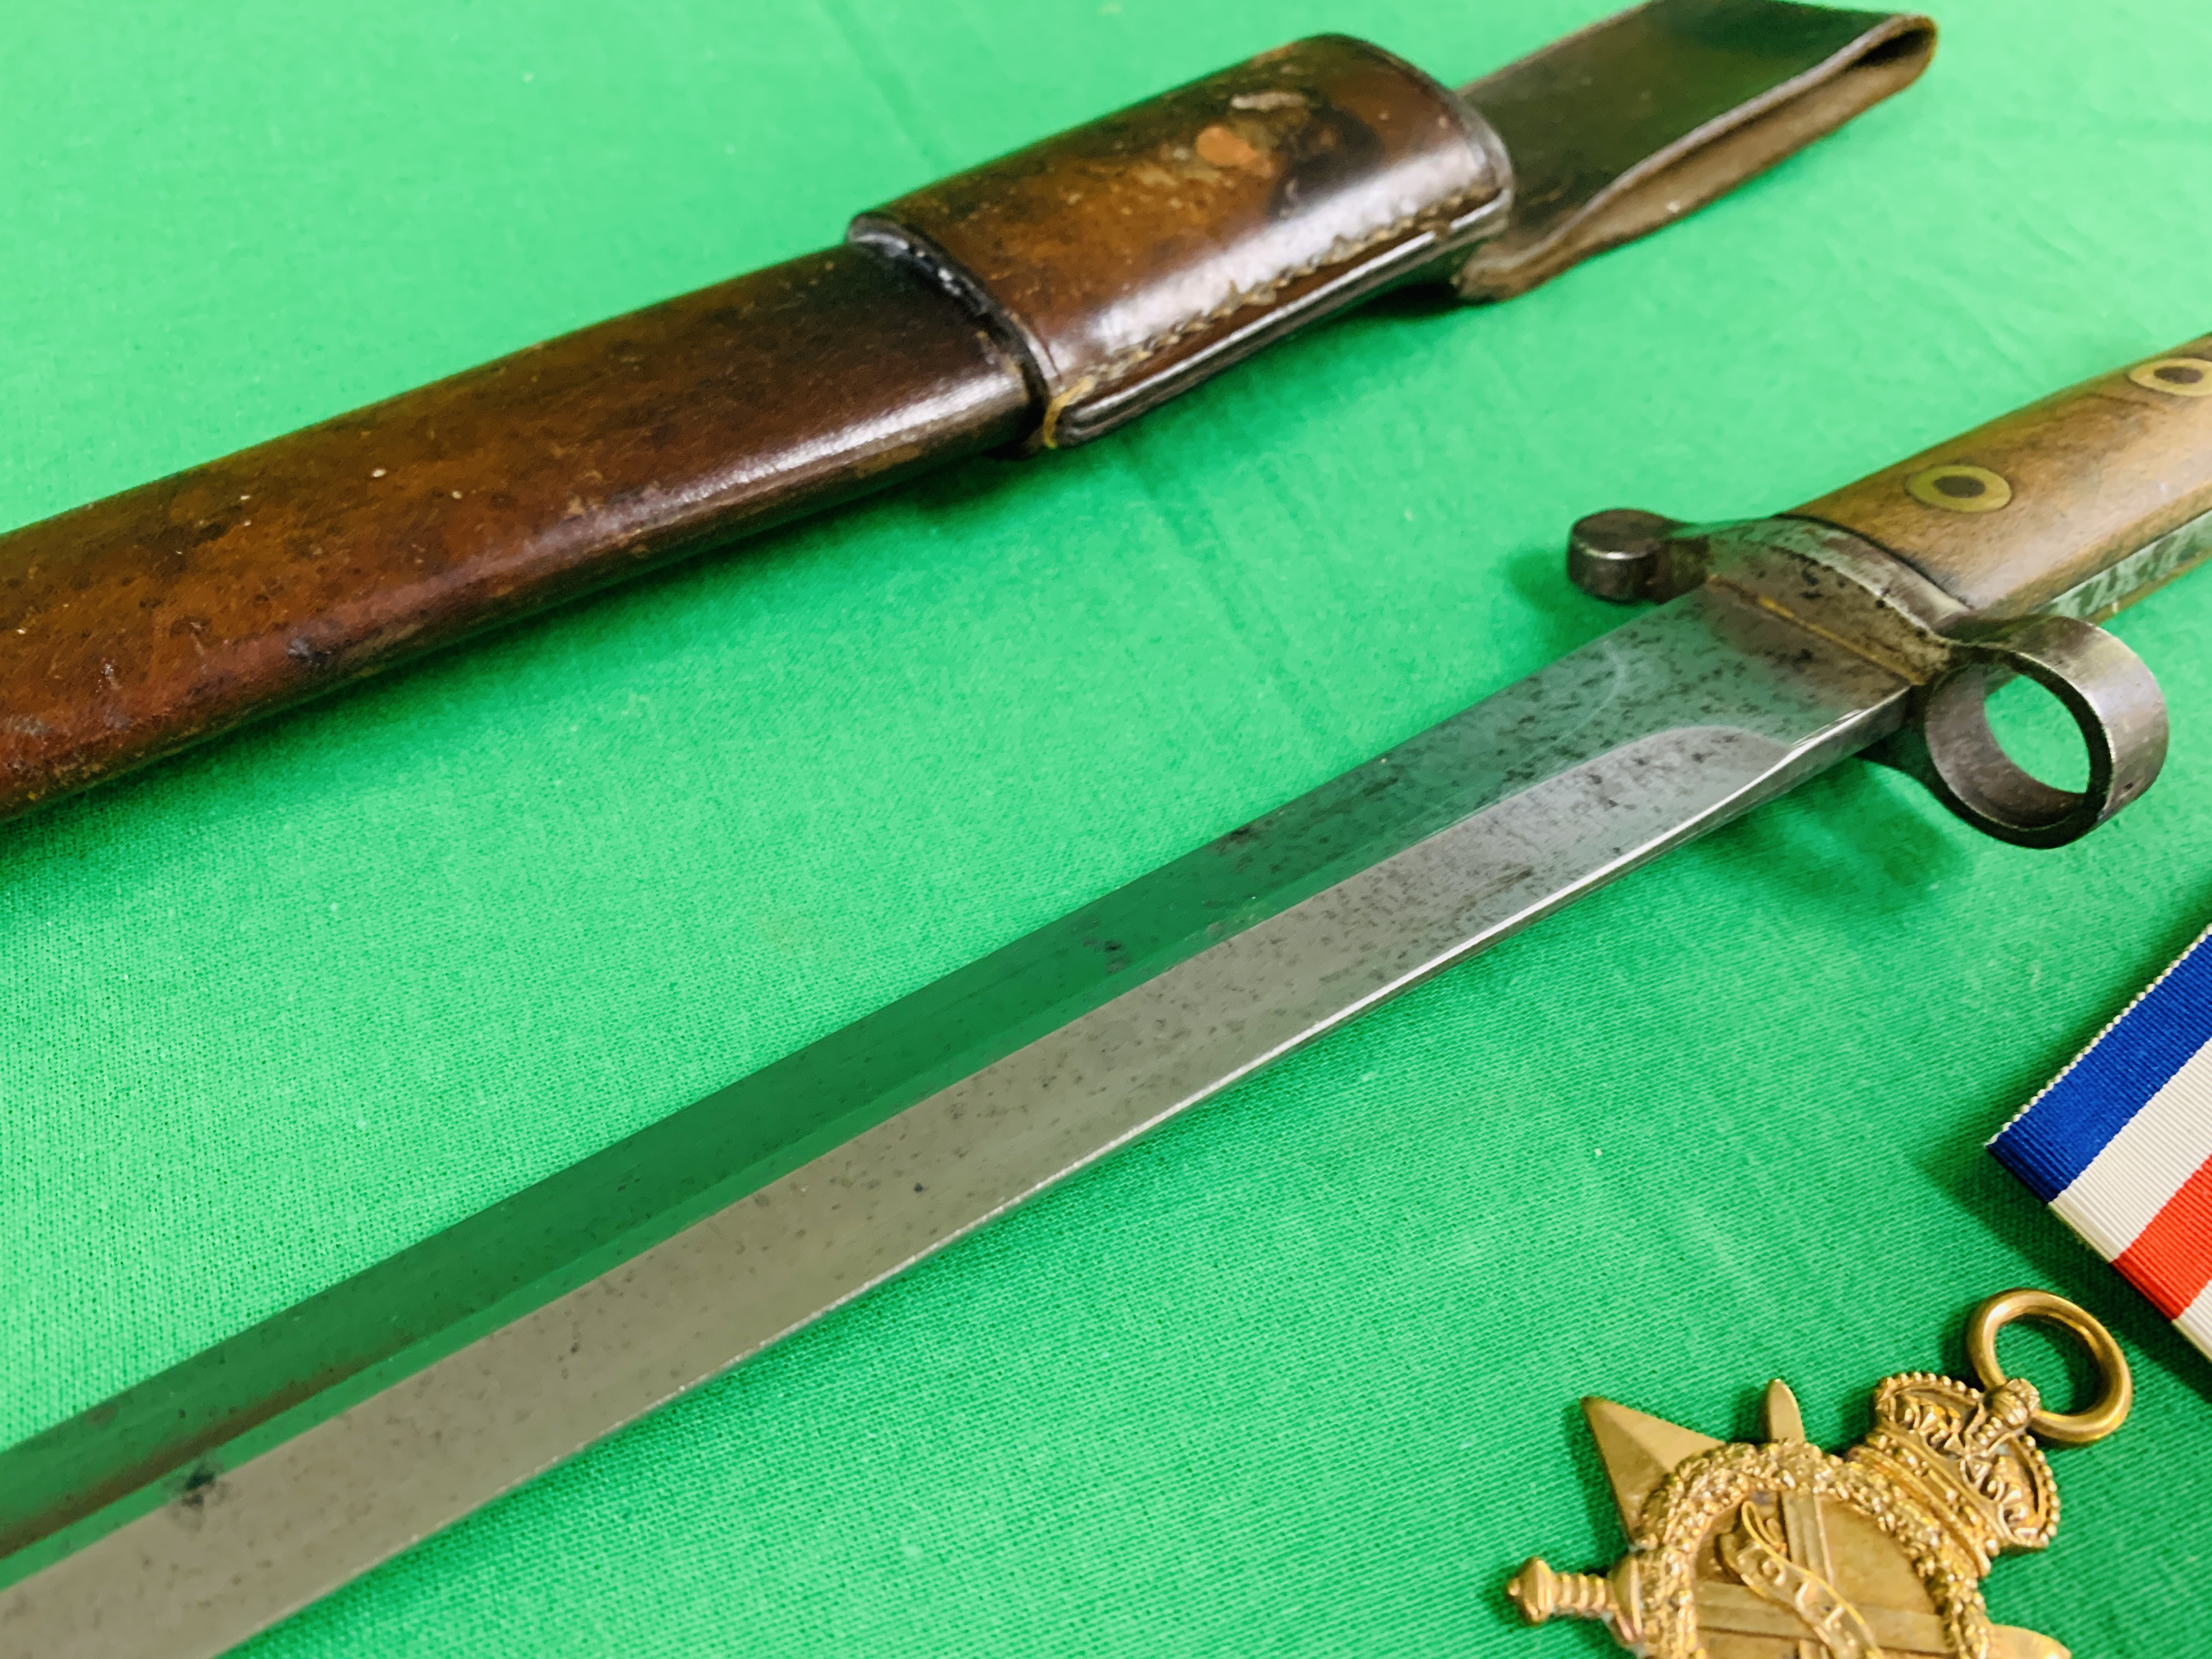 A VICTORIAN BAYONET FOR LEE ENFIELD RIFLE WITH A MK3 NAVAL LEATHER SCABBARD ALONG WITH THE RELATING - Image 7 of 14